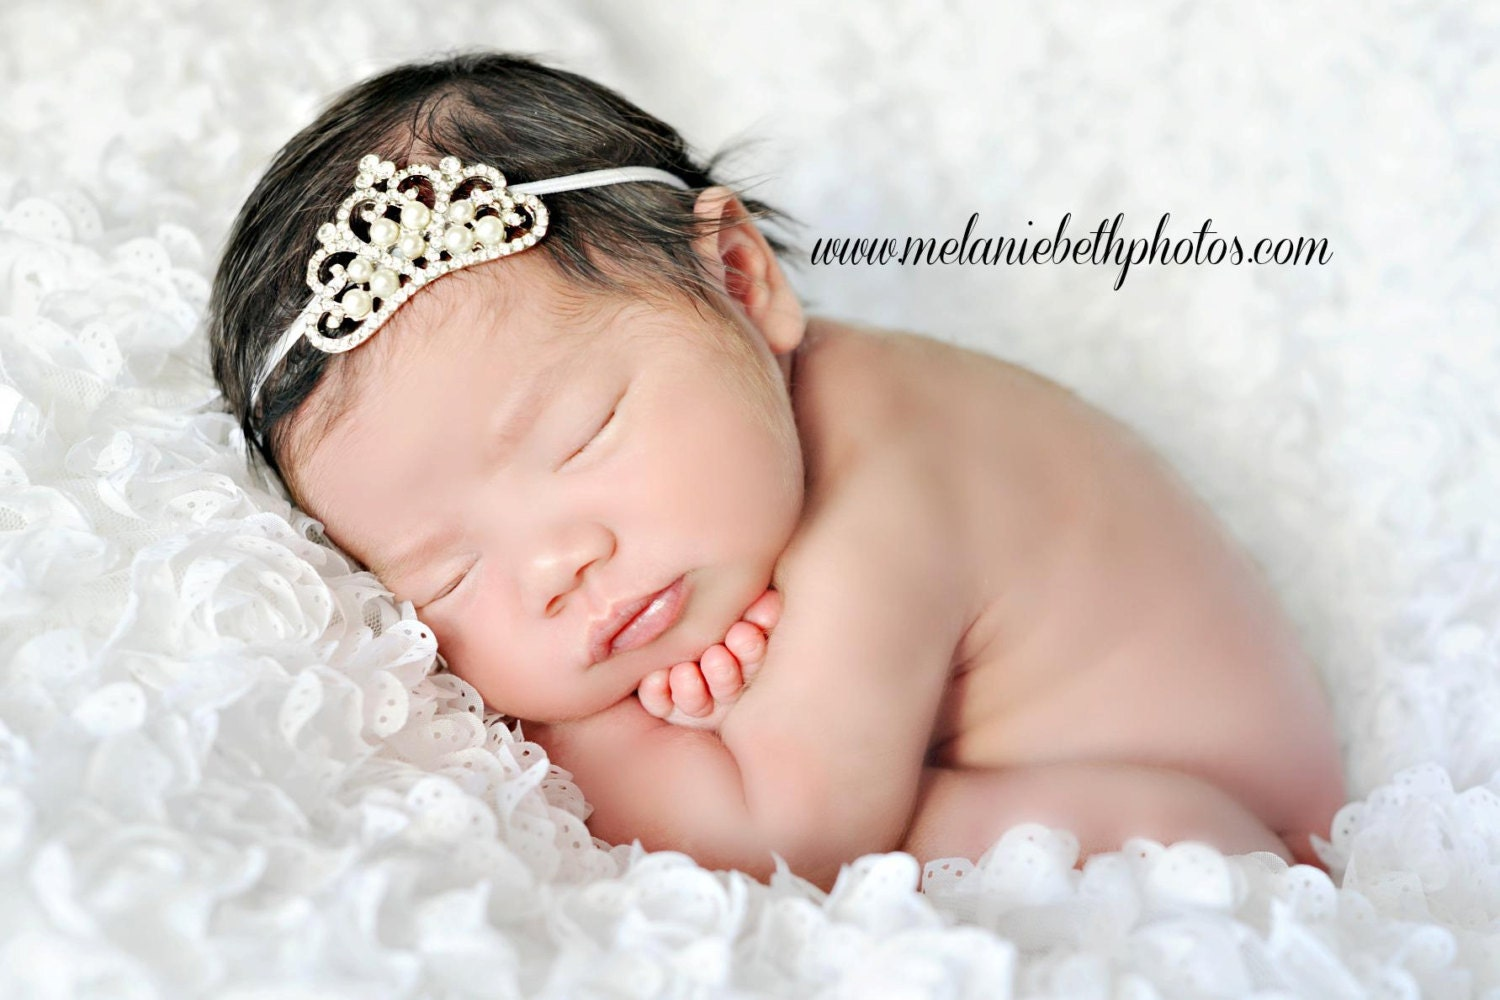 Baby Headband, Baby Tiara, Crystal & Pearl Tiara Headband, Princess Tiara, Baptism, Christening, Newborn Toddler Child Girls Headband - TheFairyFactoryShop